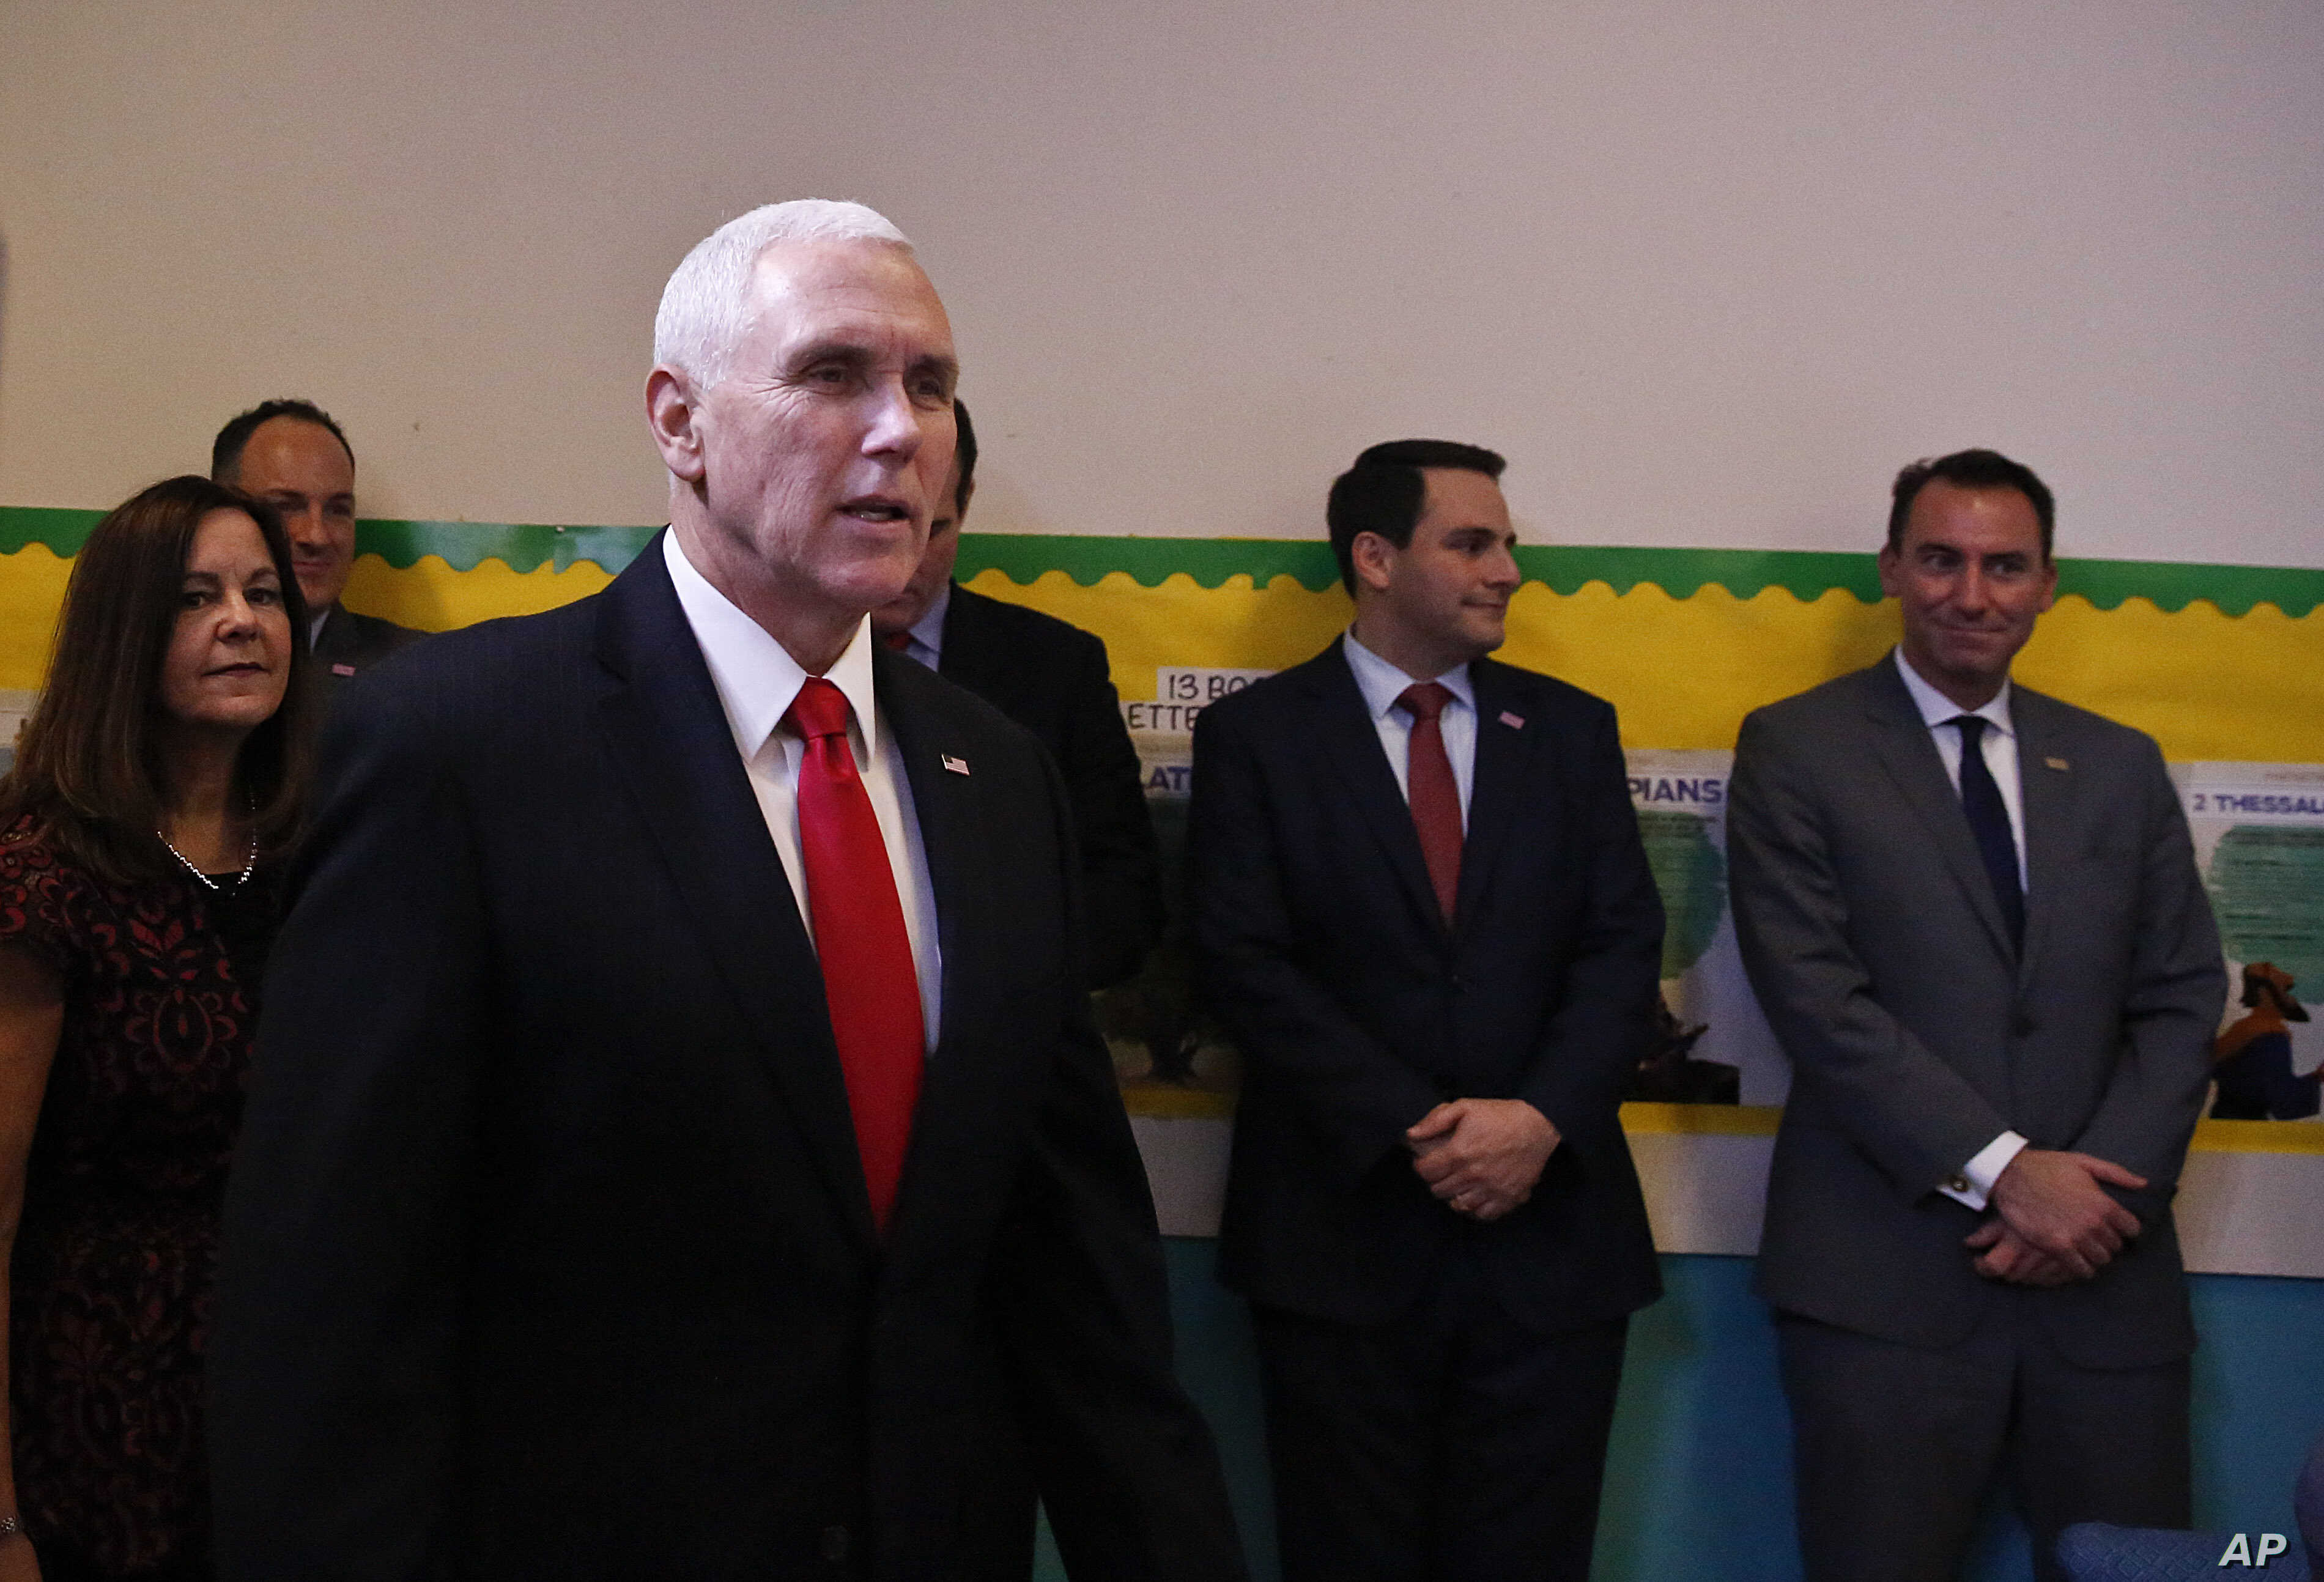 Vice President Mike Pence arrives to speak at Iglesia Doral Jesus Worship Center for a round-table discussion on the political crisis in Venezuela with community leaders in Doral, Fla., Feb. 1, 2019.